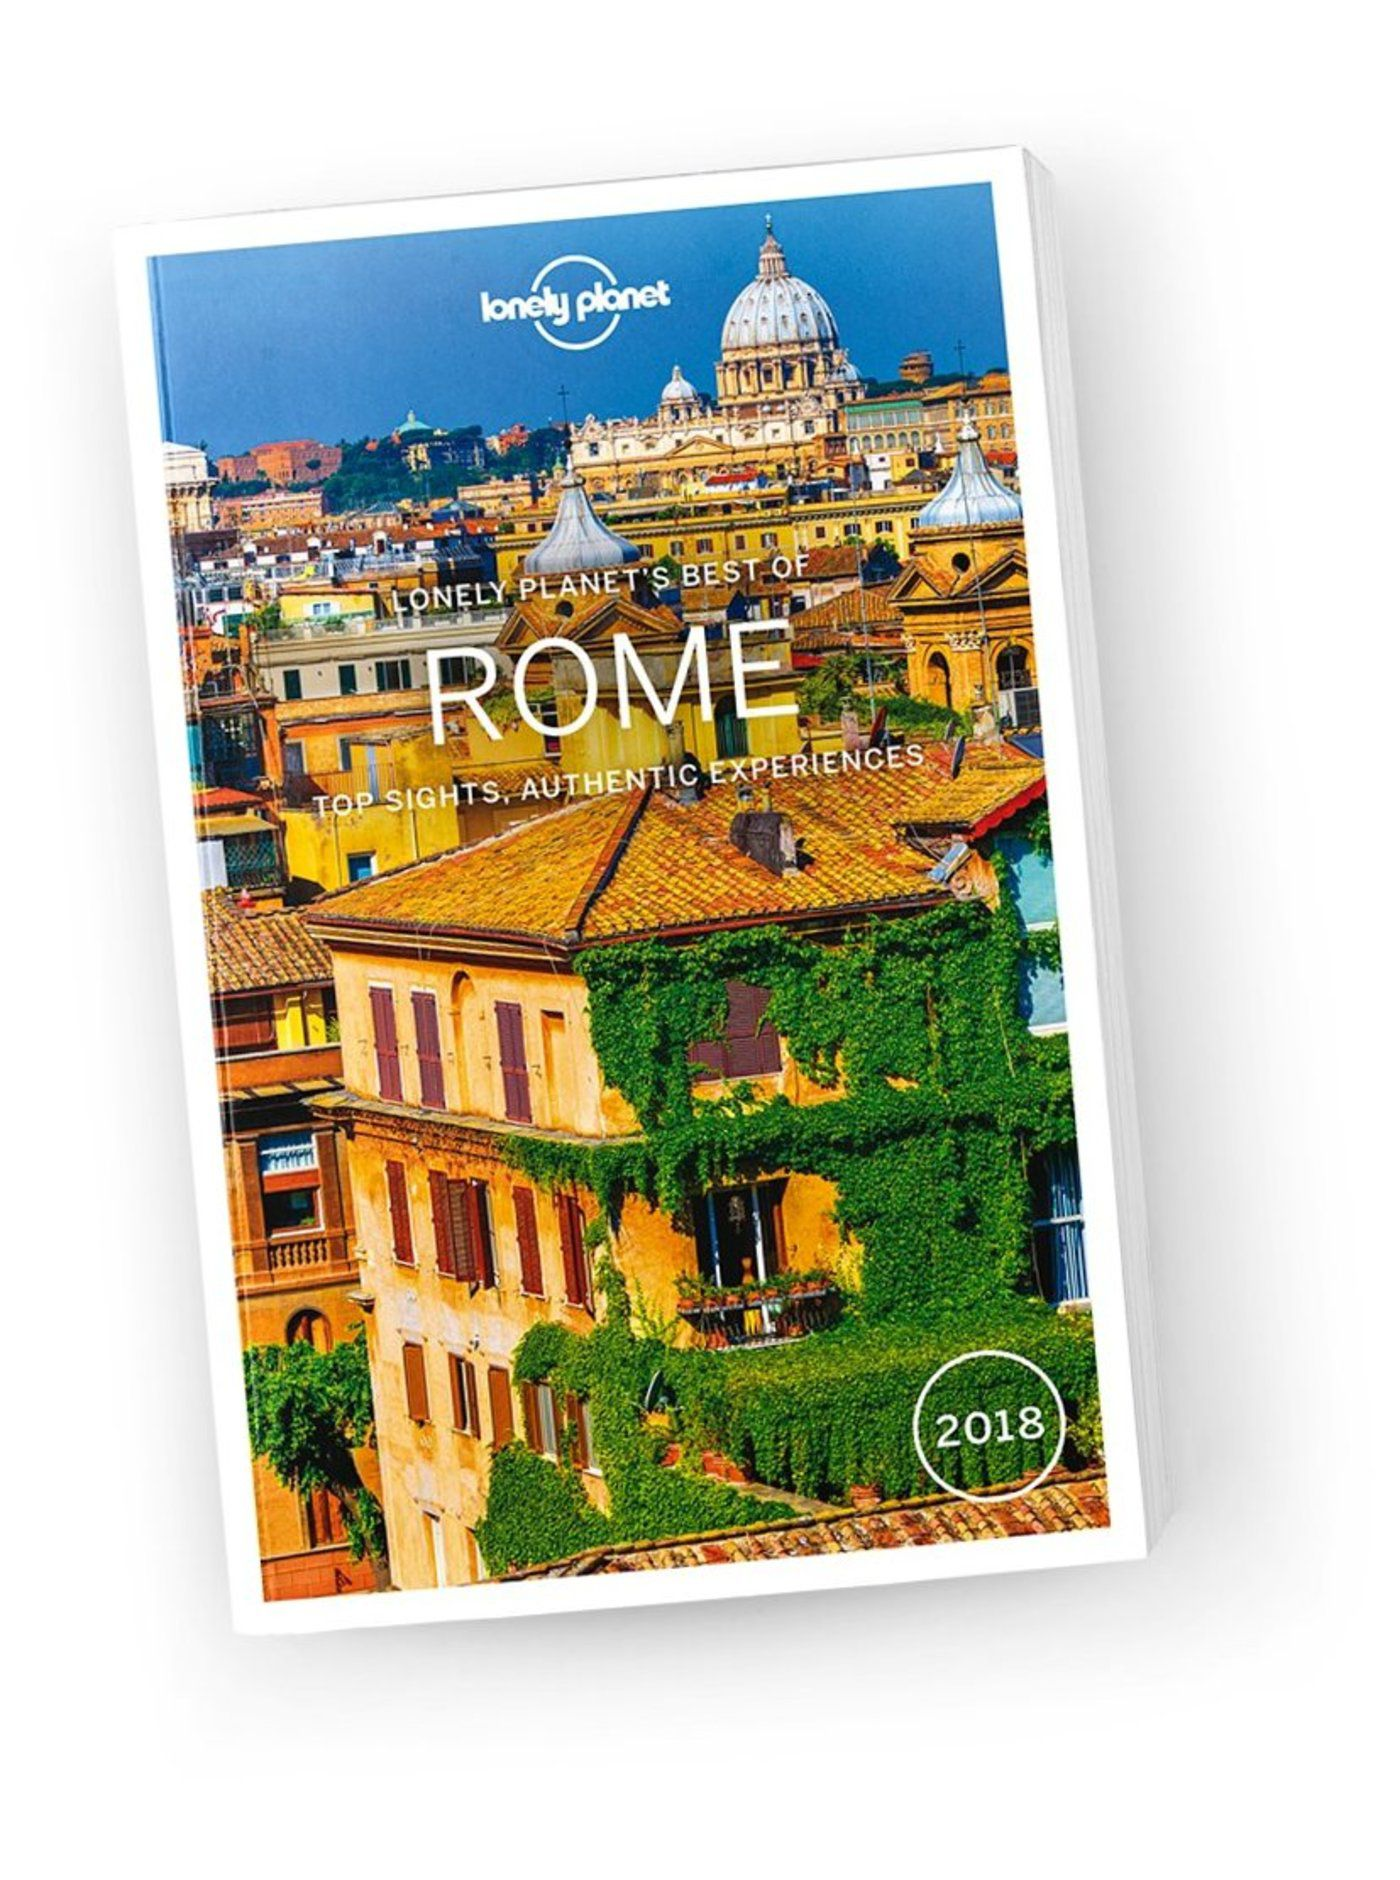 Best of Rome 2018 city guide